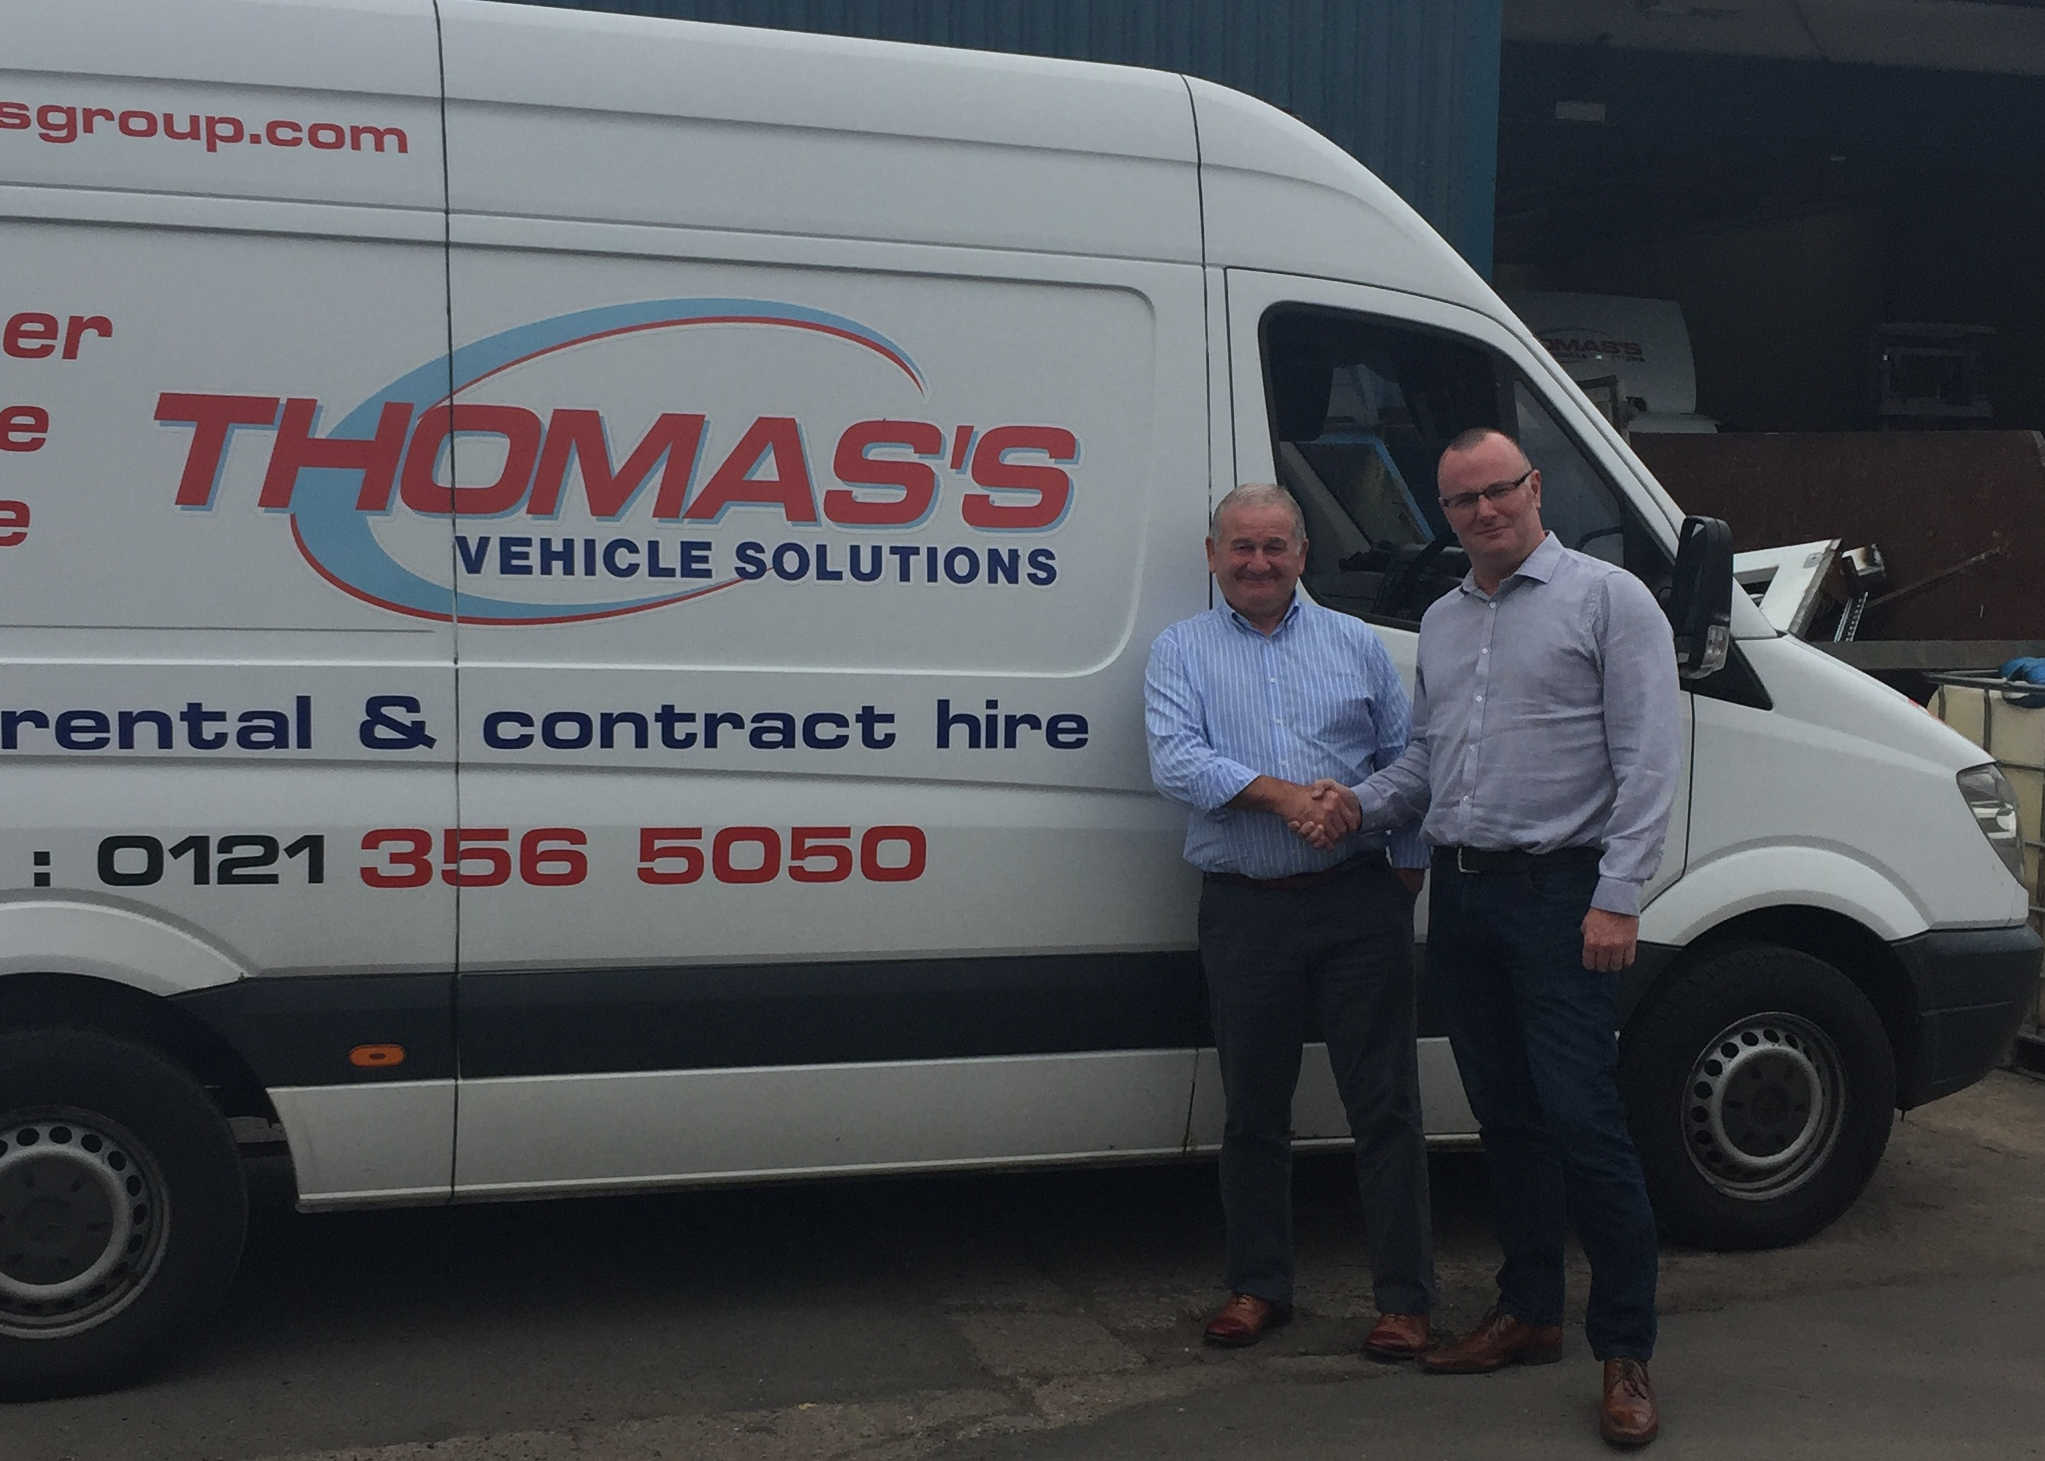 Thomas's Vehicle Solutions